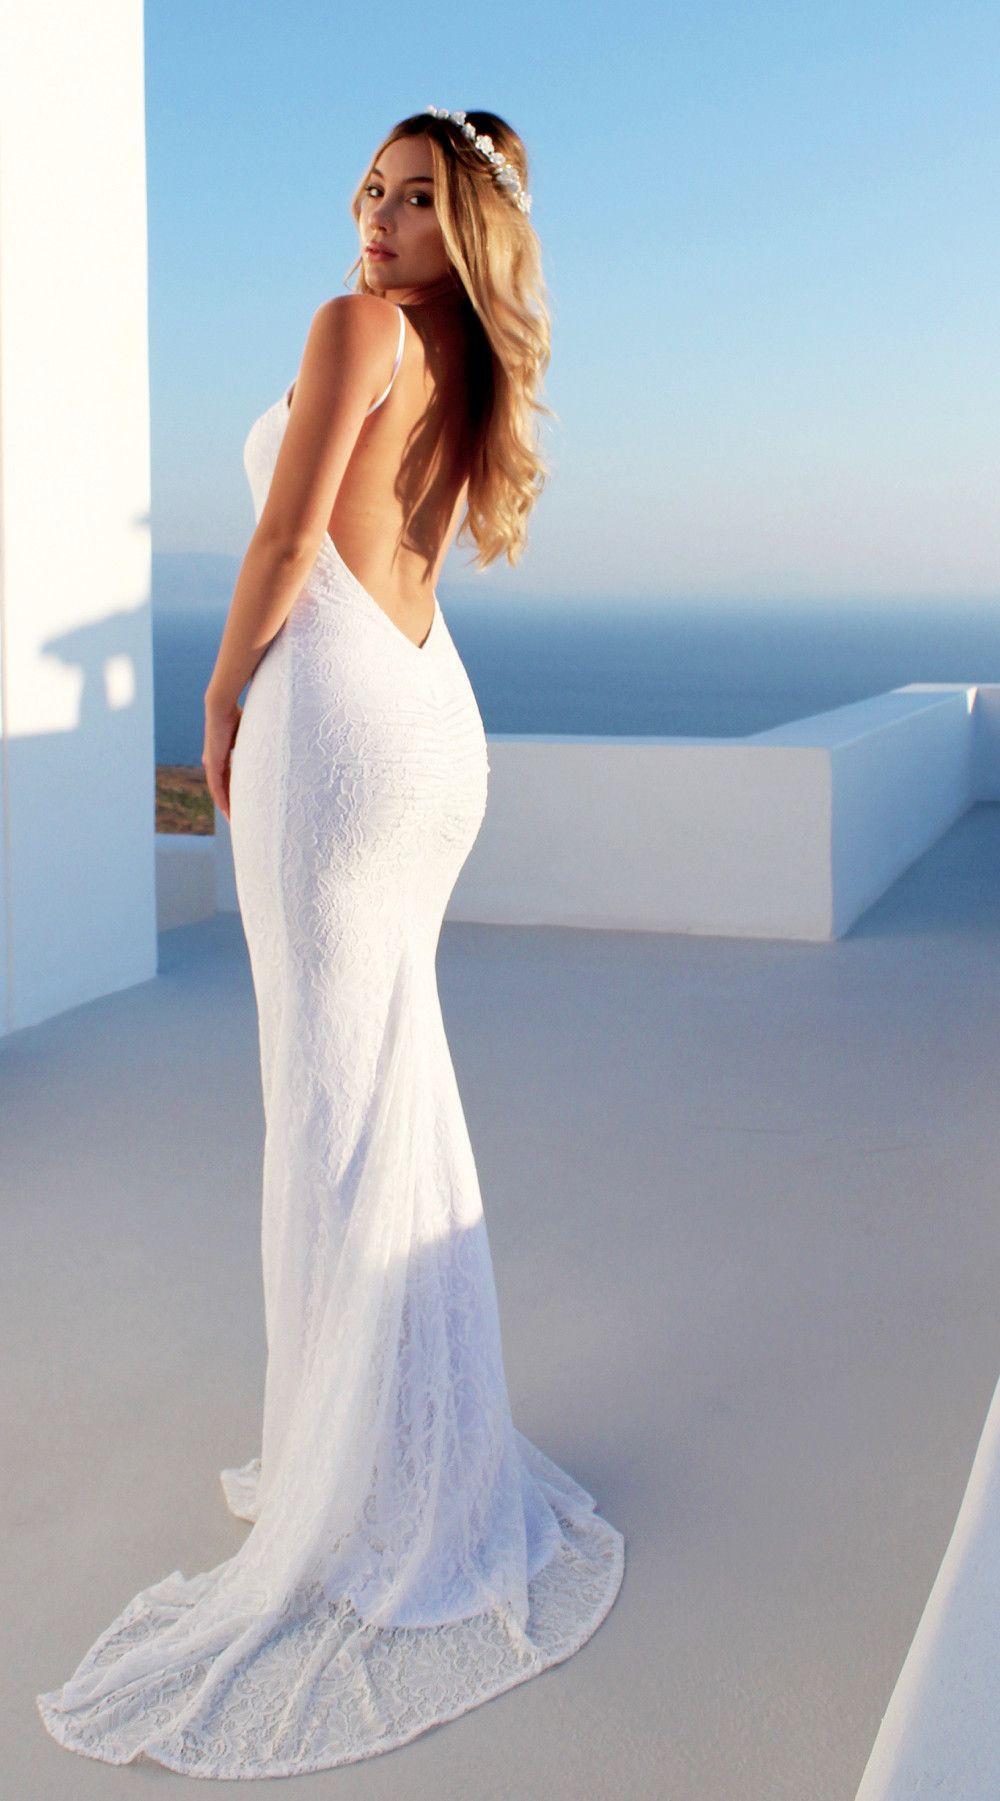 Reckless White | Weddings | Pinterest | Collection, Formal and Fashion